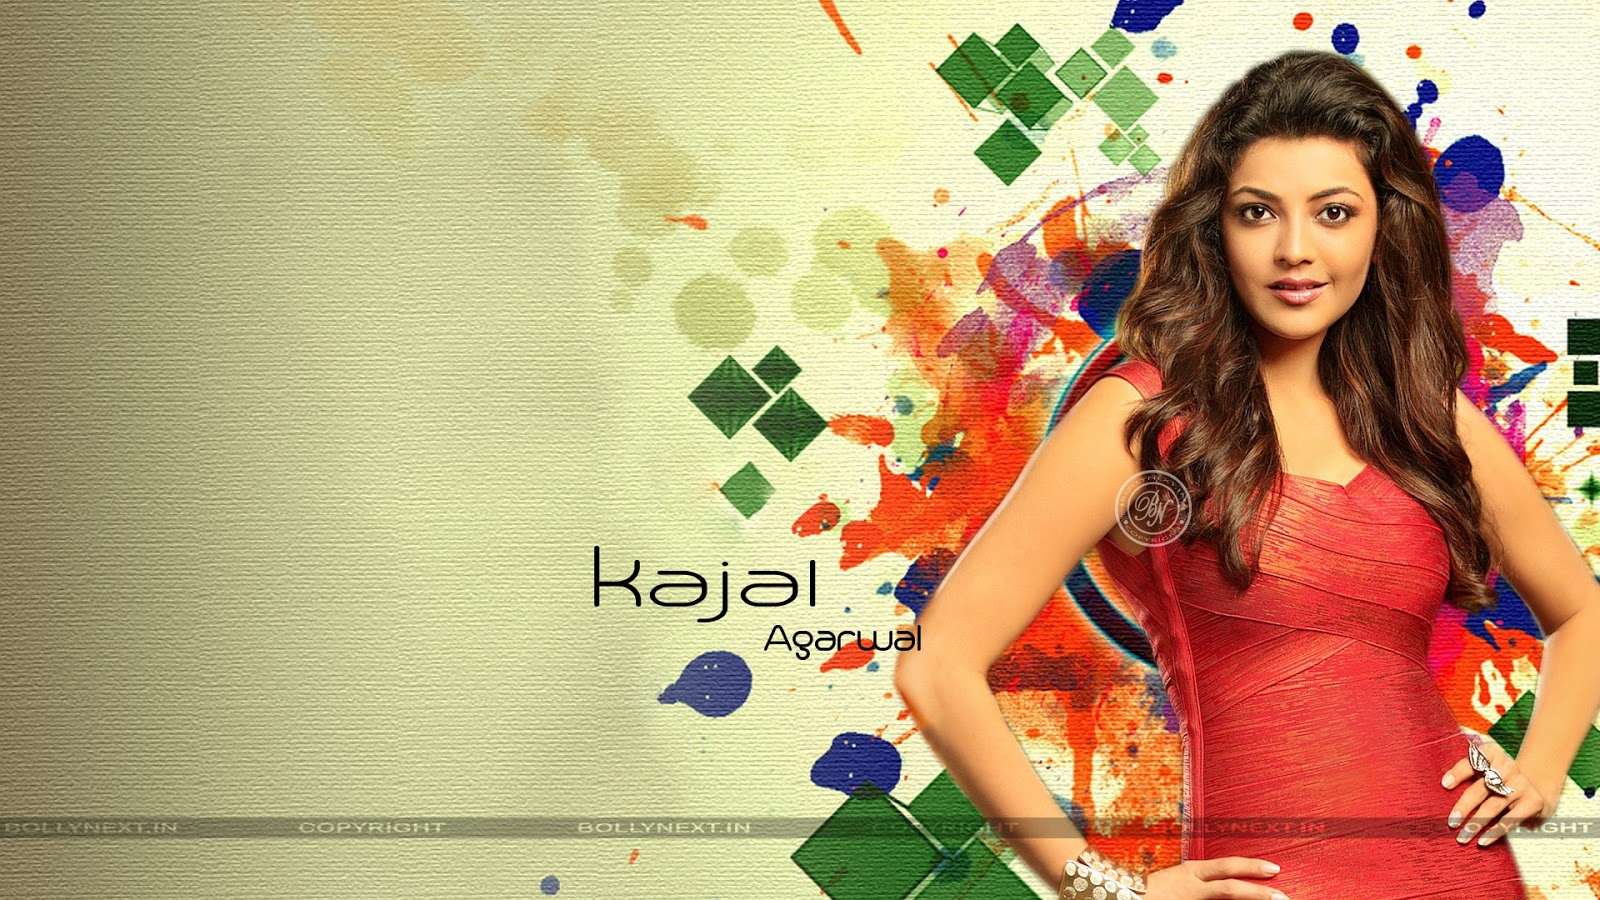 Wallpaper download kajal agarwal - Kajal Images Download